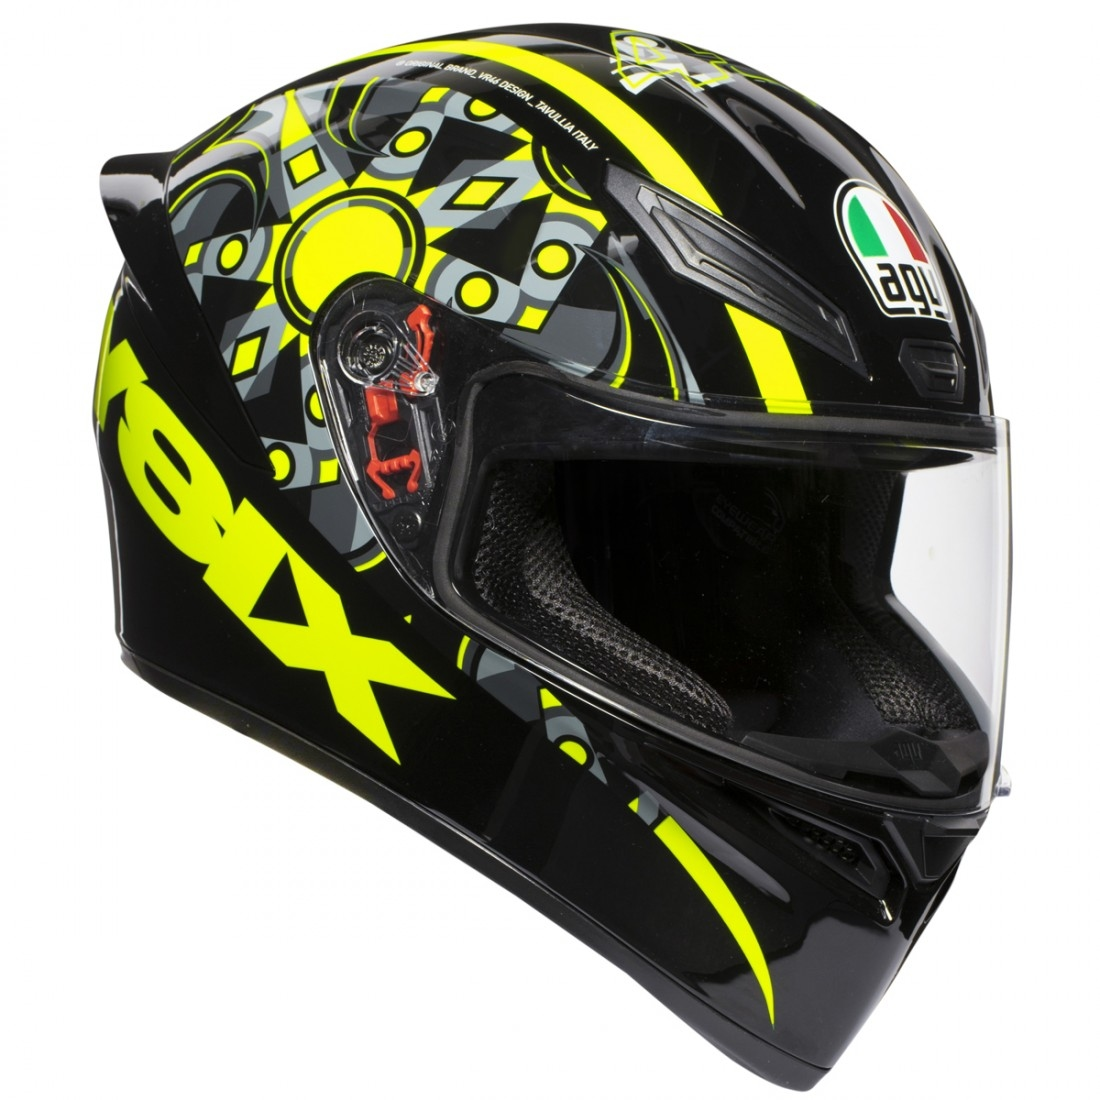 agv k 1 rossi flavum 46 helmet motocard. Black Bedroom Furniture Sets. Home Design Ideas